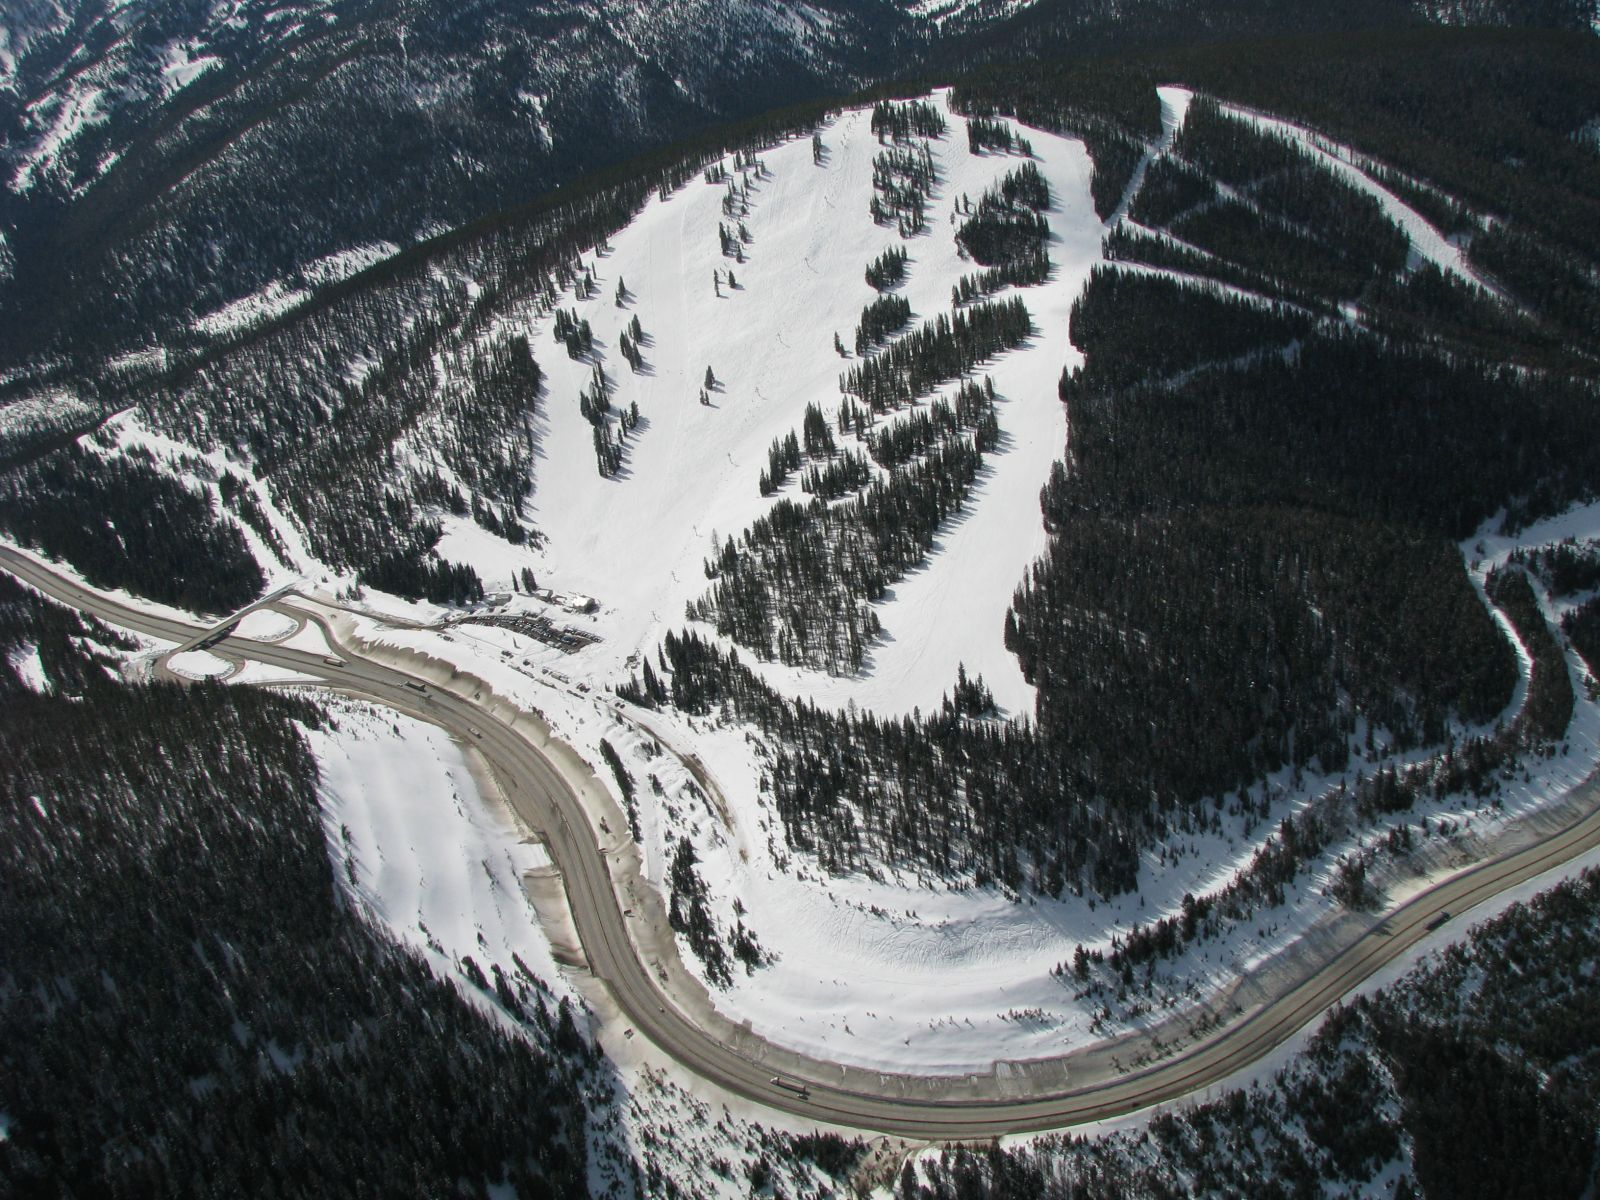 Aerial photo of the the ski hill